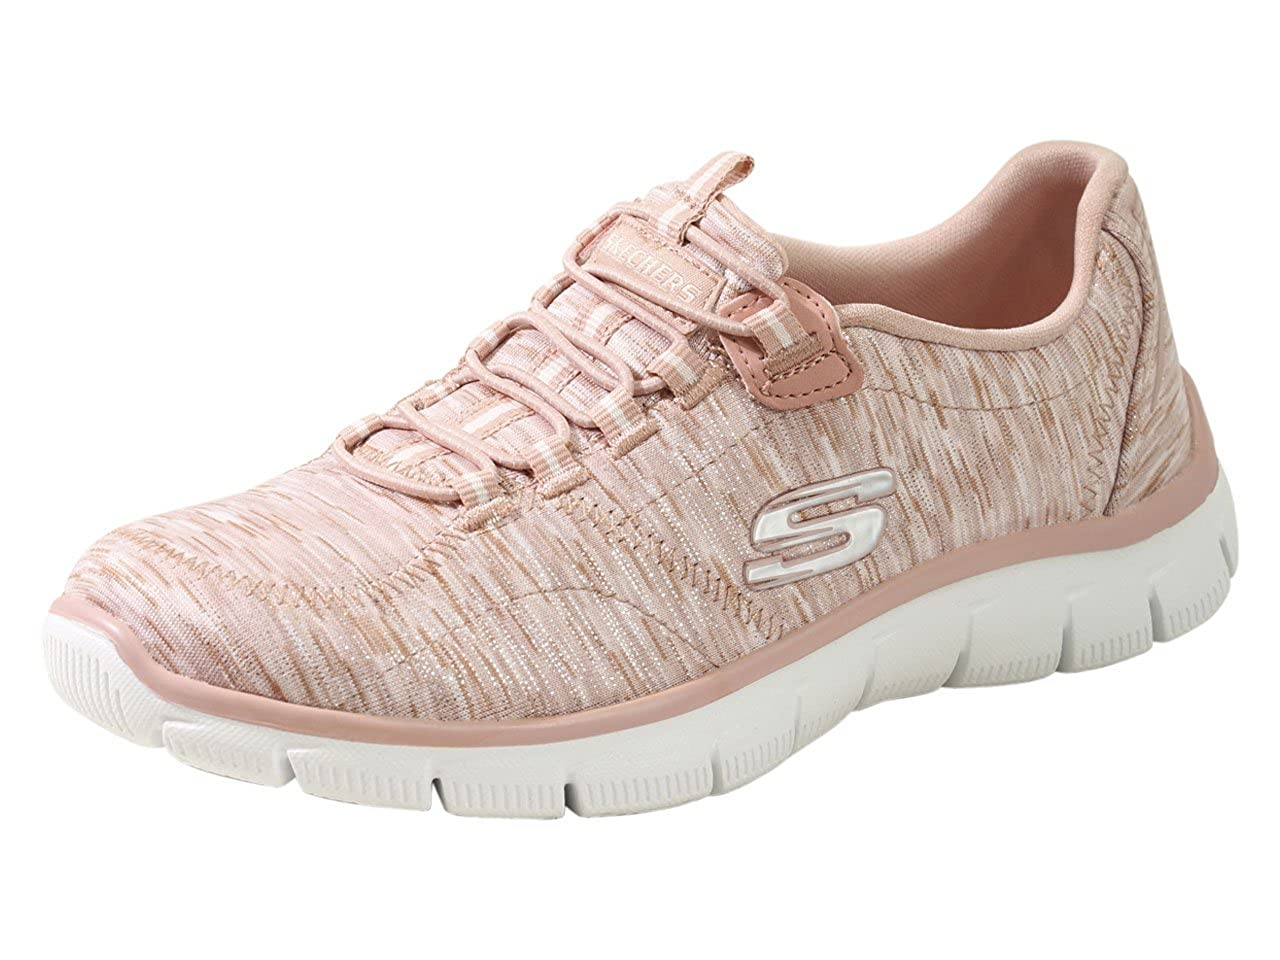 Rosa Skechers Damen Empire-take Ch Turnschuhe